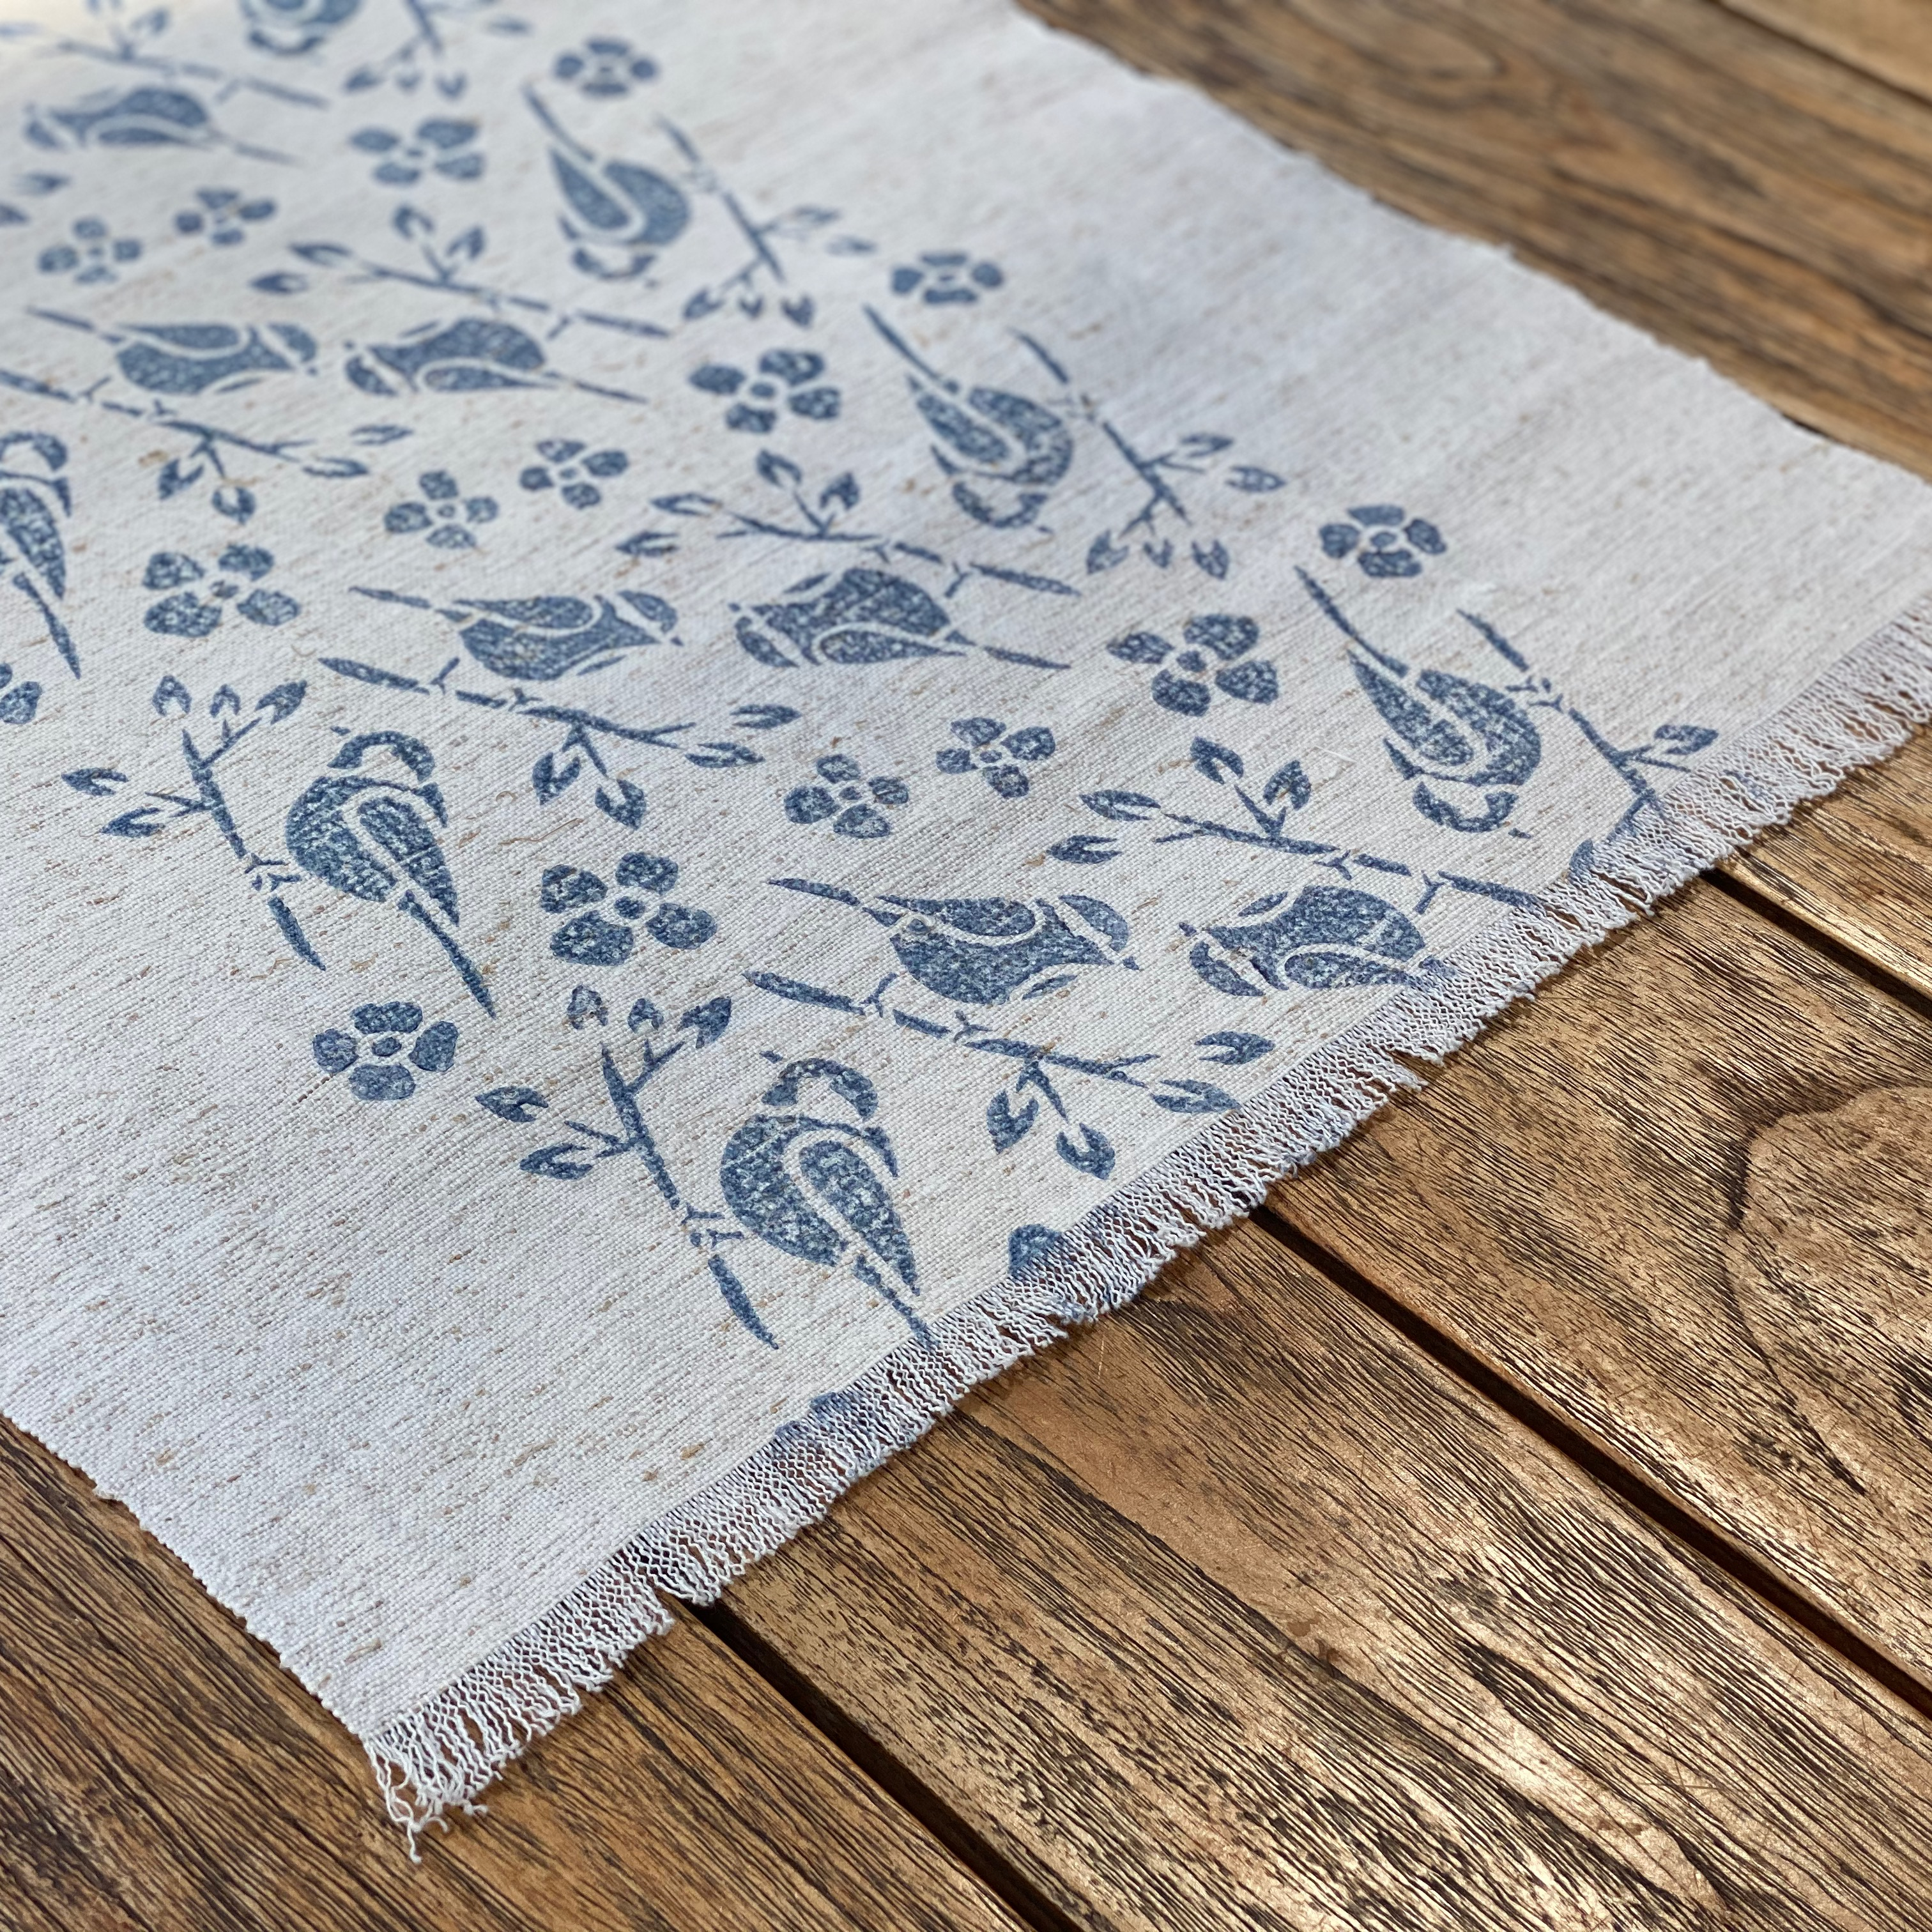 Hand Block Printed Table Runner in Blue